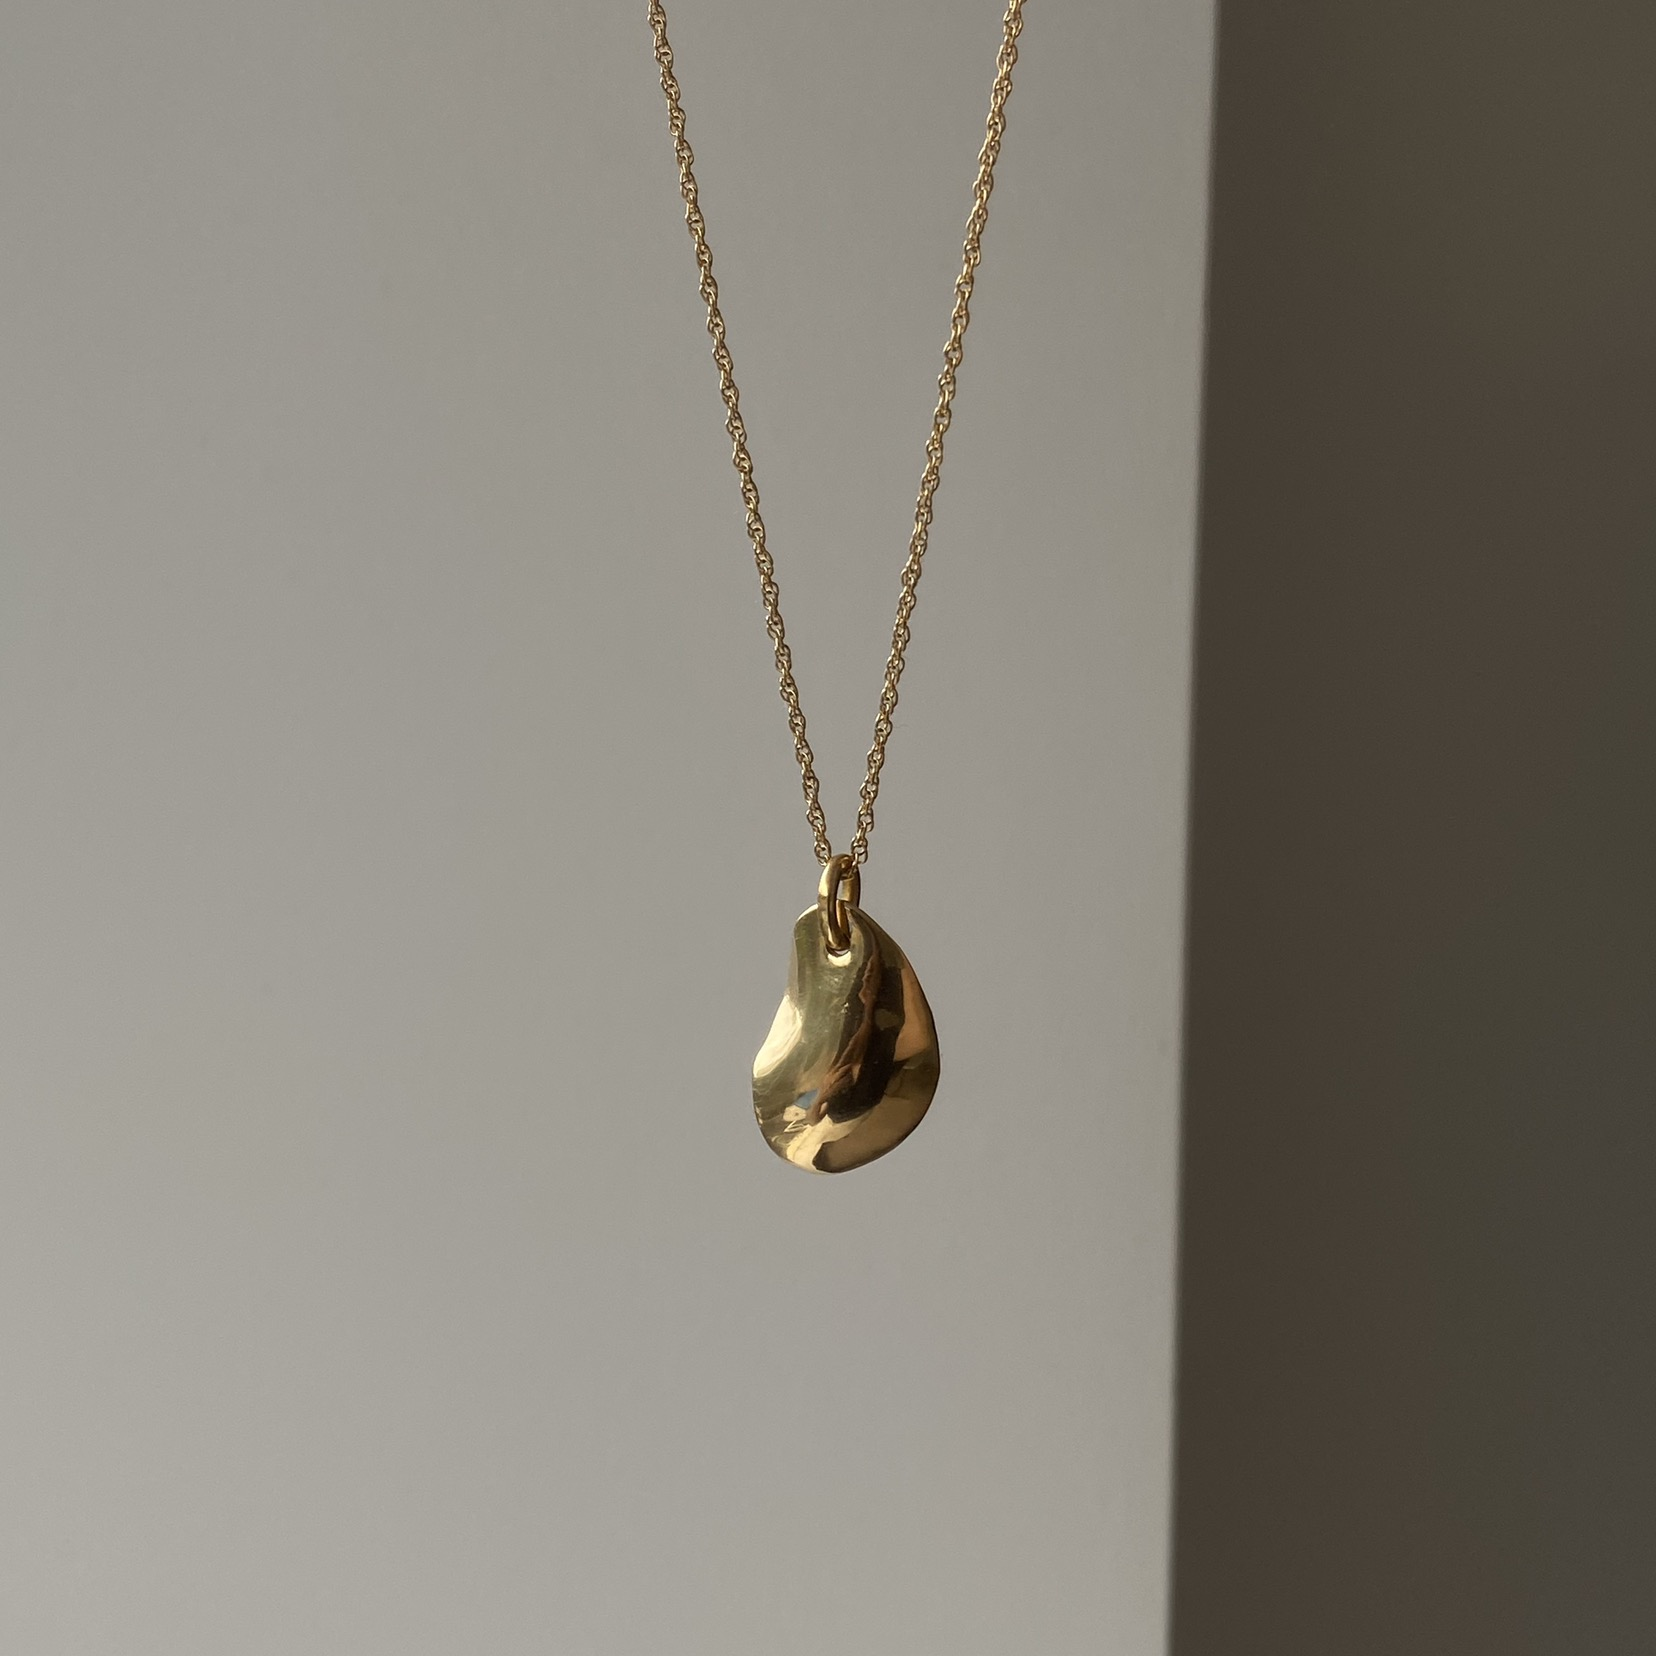 golden plate necklace